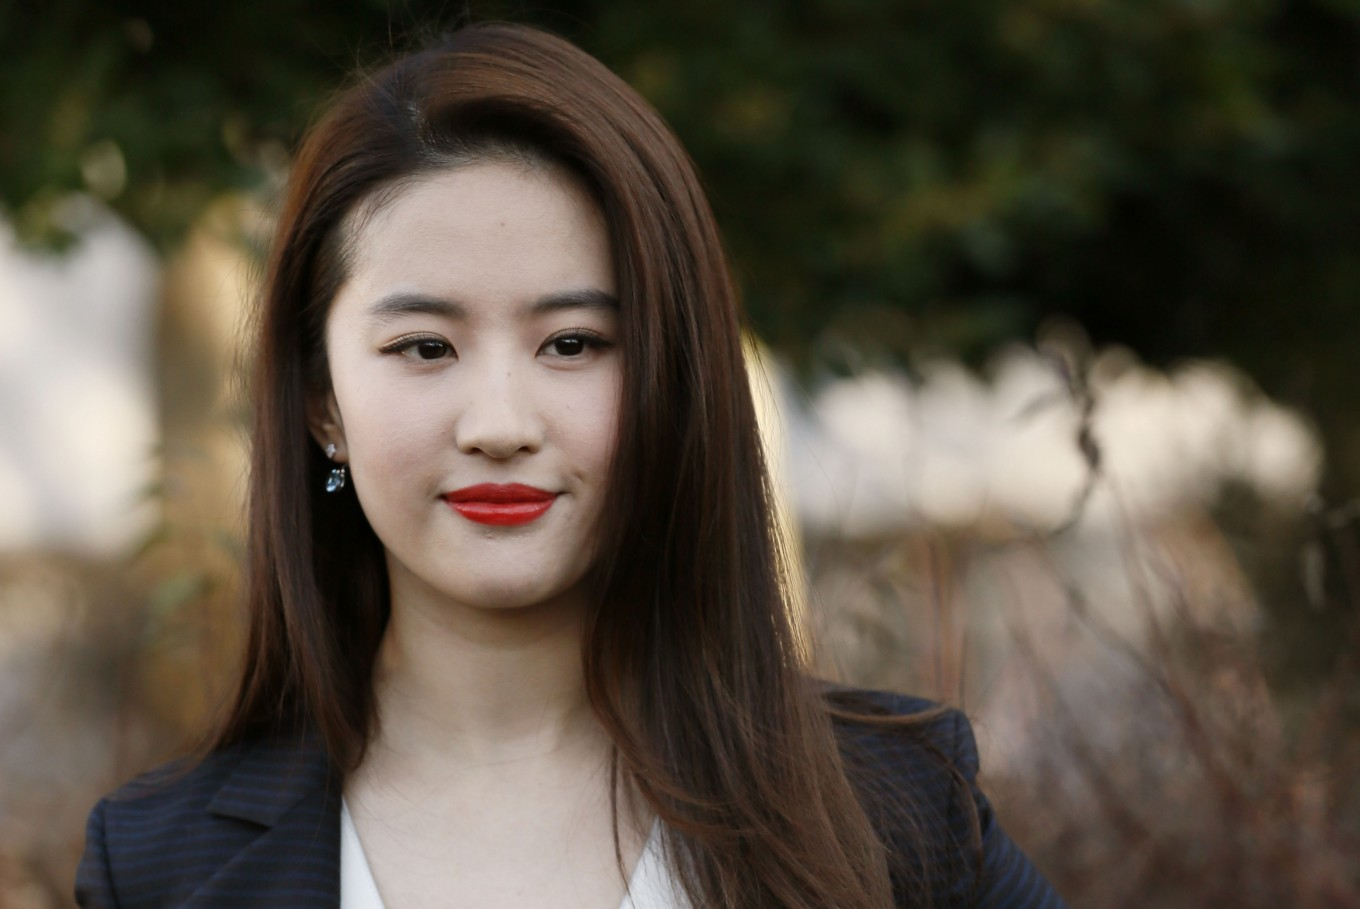 Chinese actress Liu Yifei to play Mulan in Disney's live-action adaptation